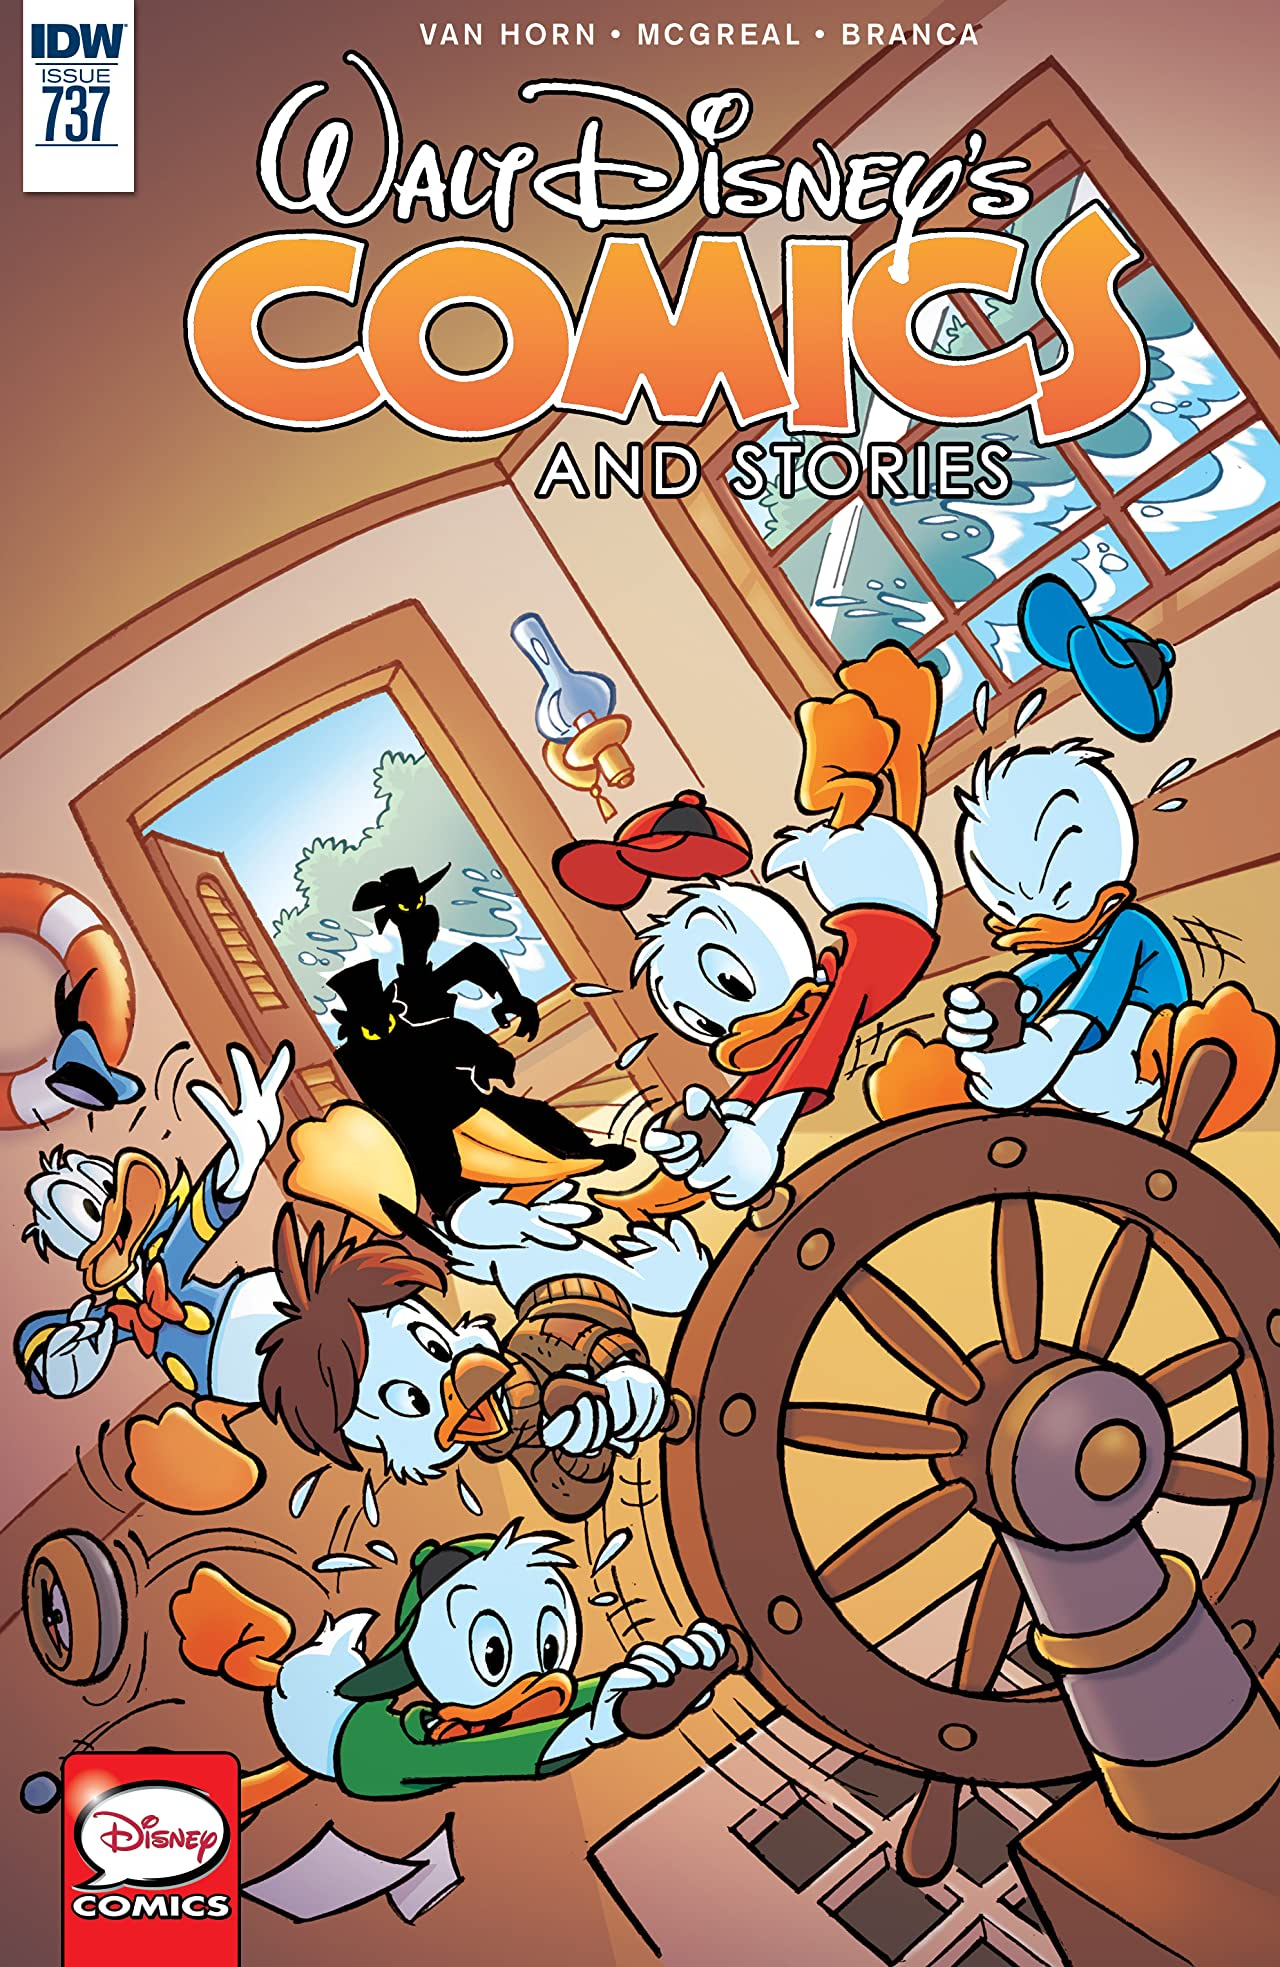 Walt Disney's Comics and Stories #737